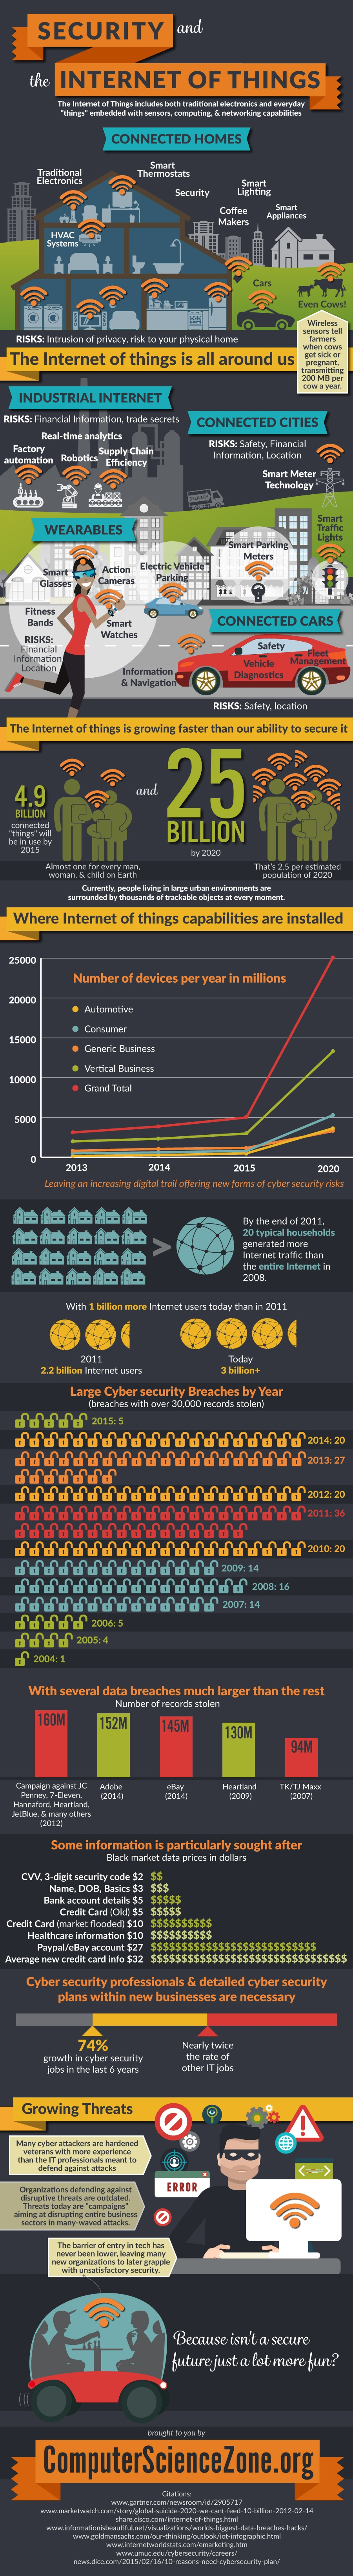 Security-and-the-Internet-of-Things